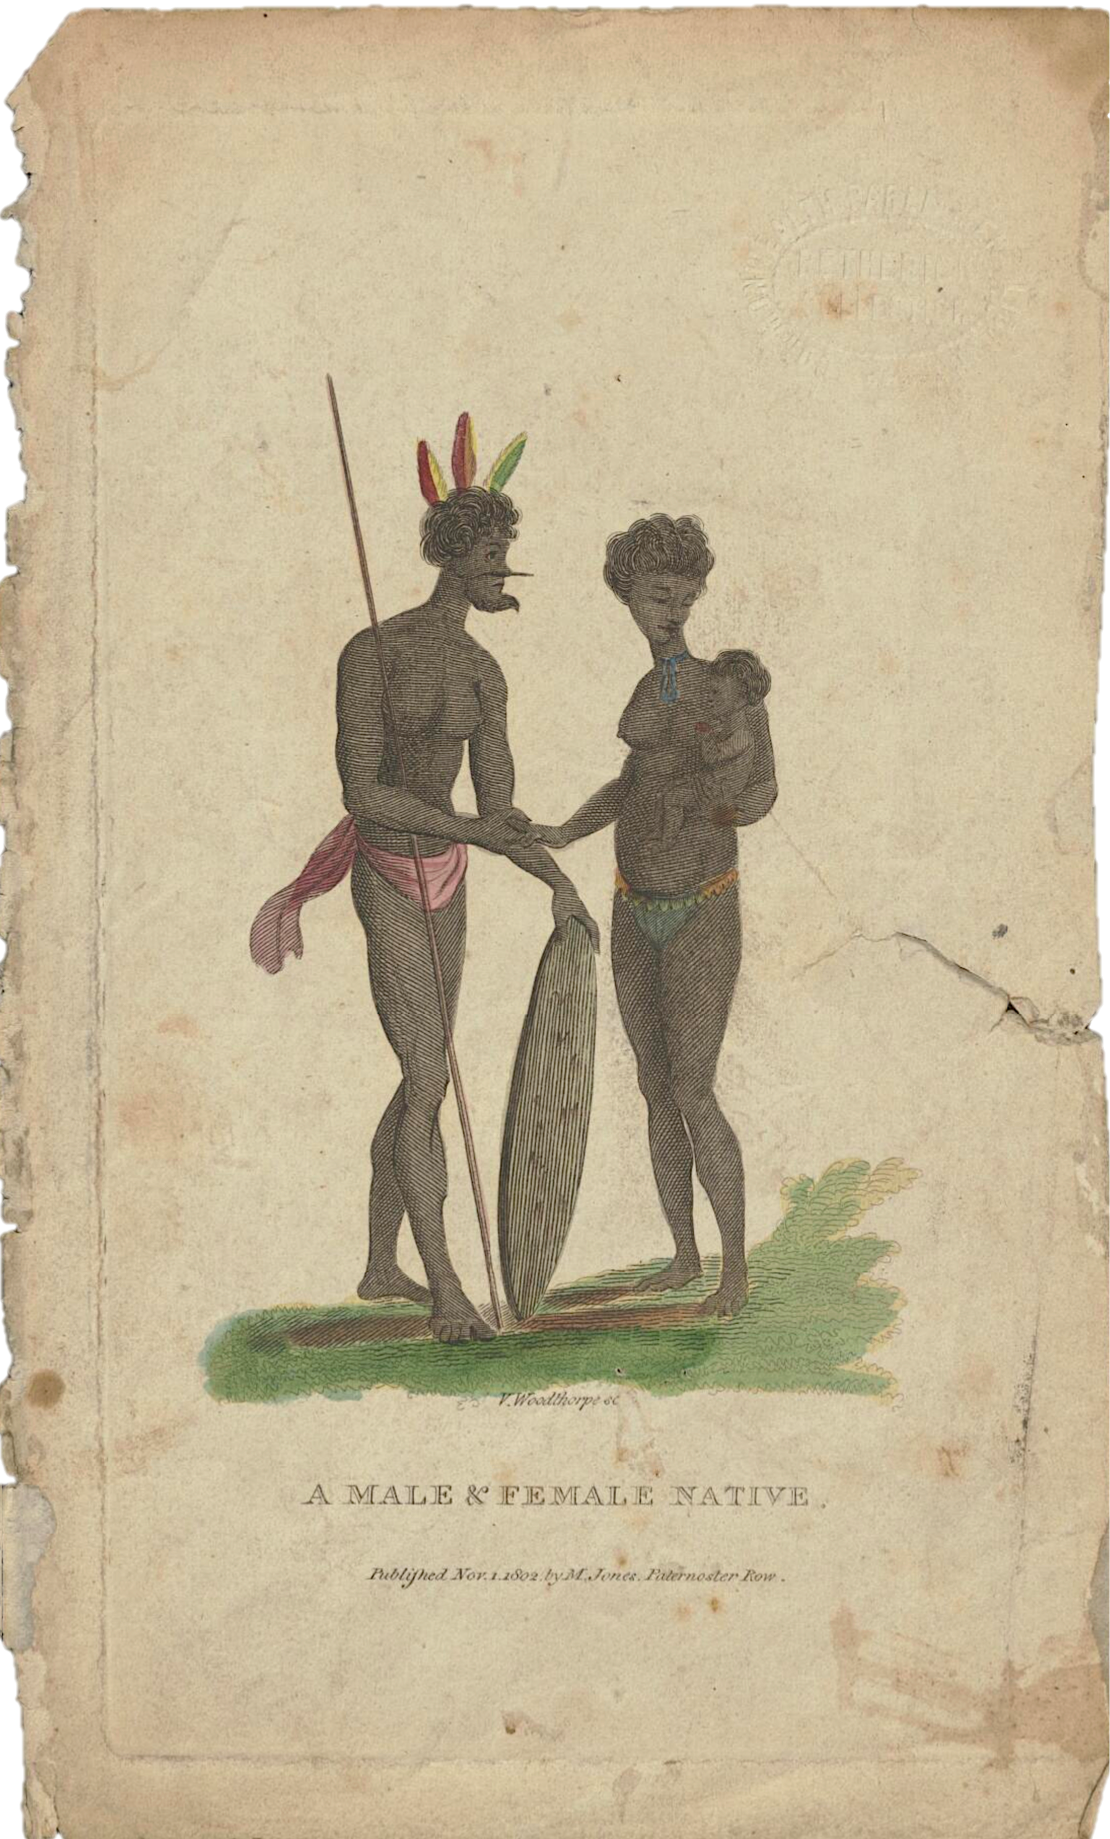 Vincent Woodthorpe, A Male and Female Native, History of New South Wales, Darug, St. John's Cemetery Project, Old Parramattans, Thomas Daveney, George Barrington, St. John's Cemetery, Parramatta, Tyrant of Toongabbie